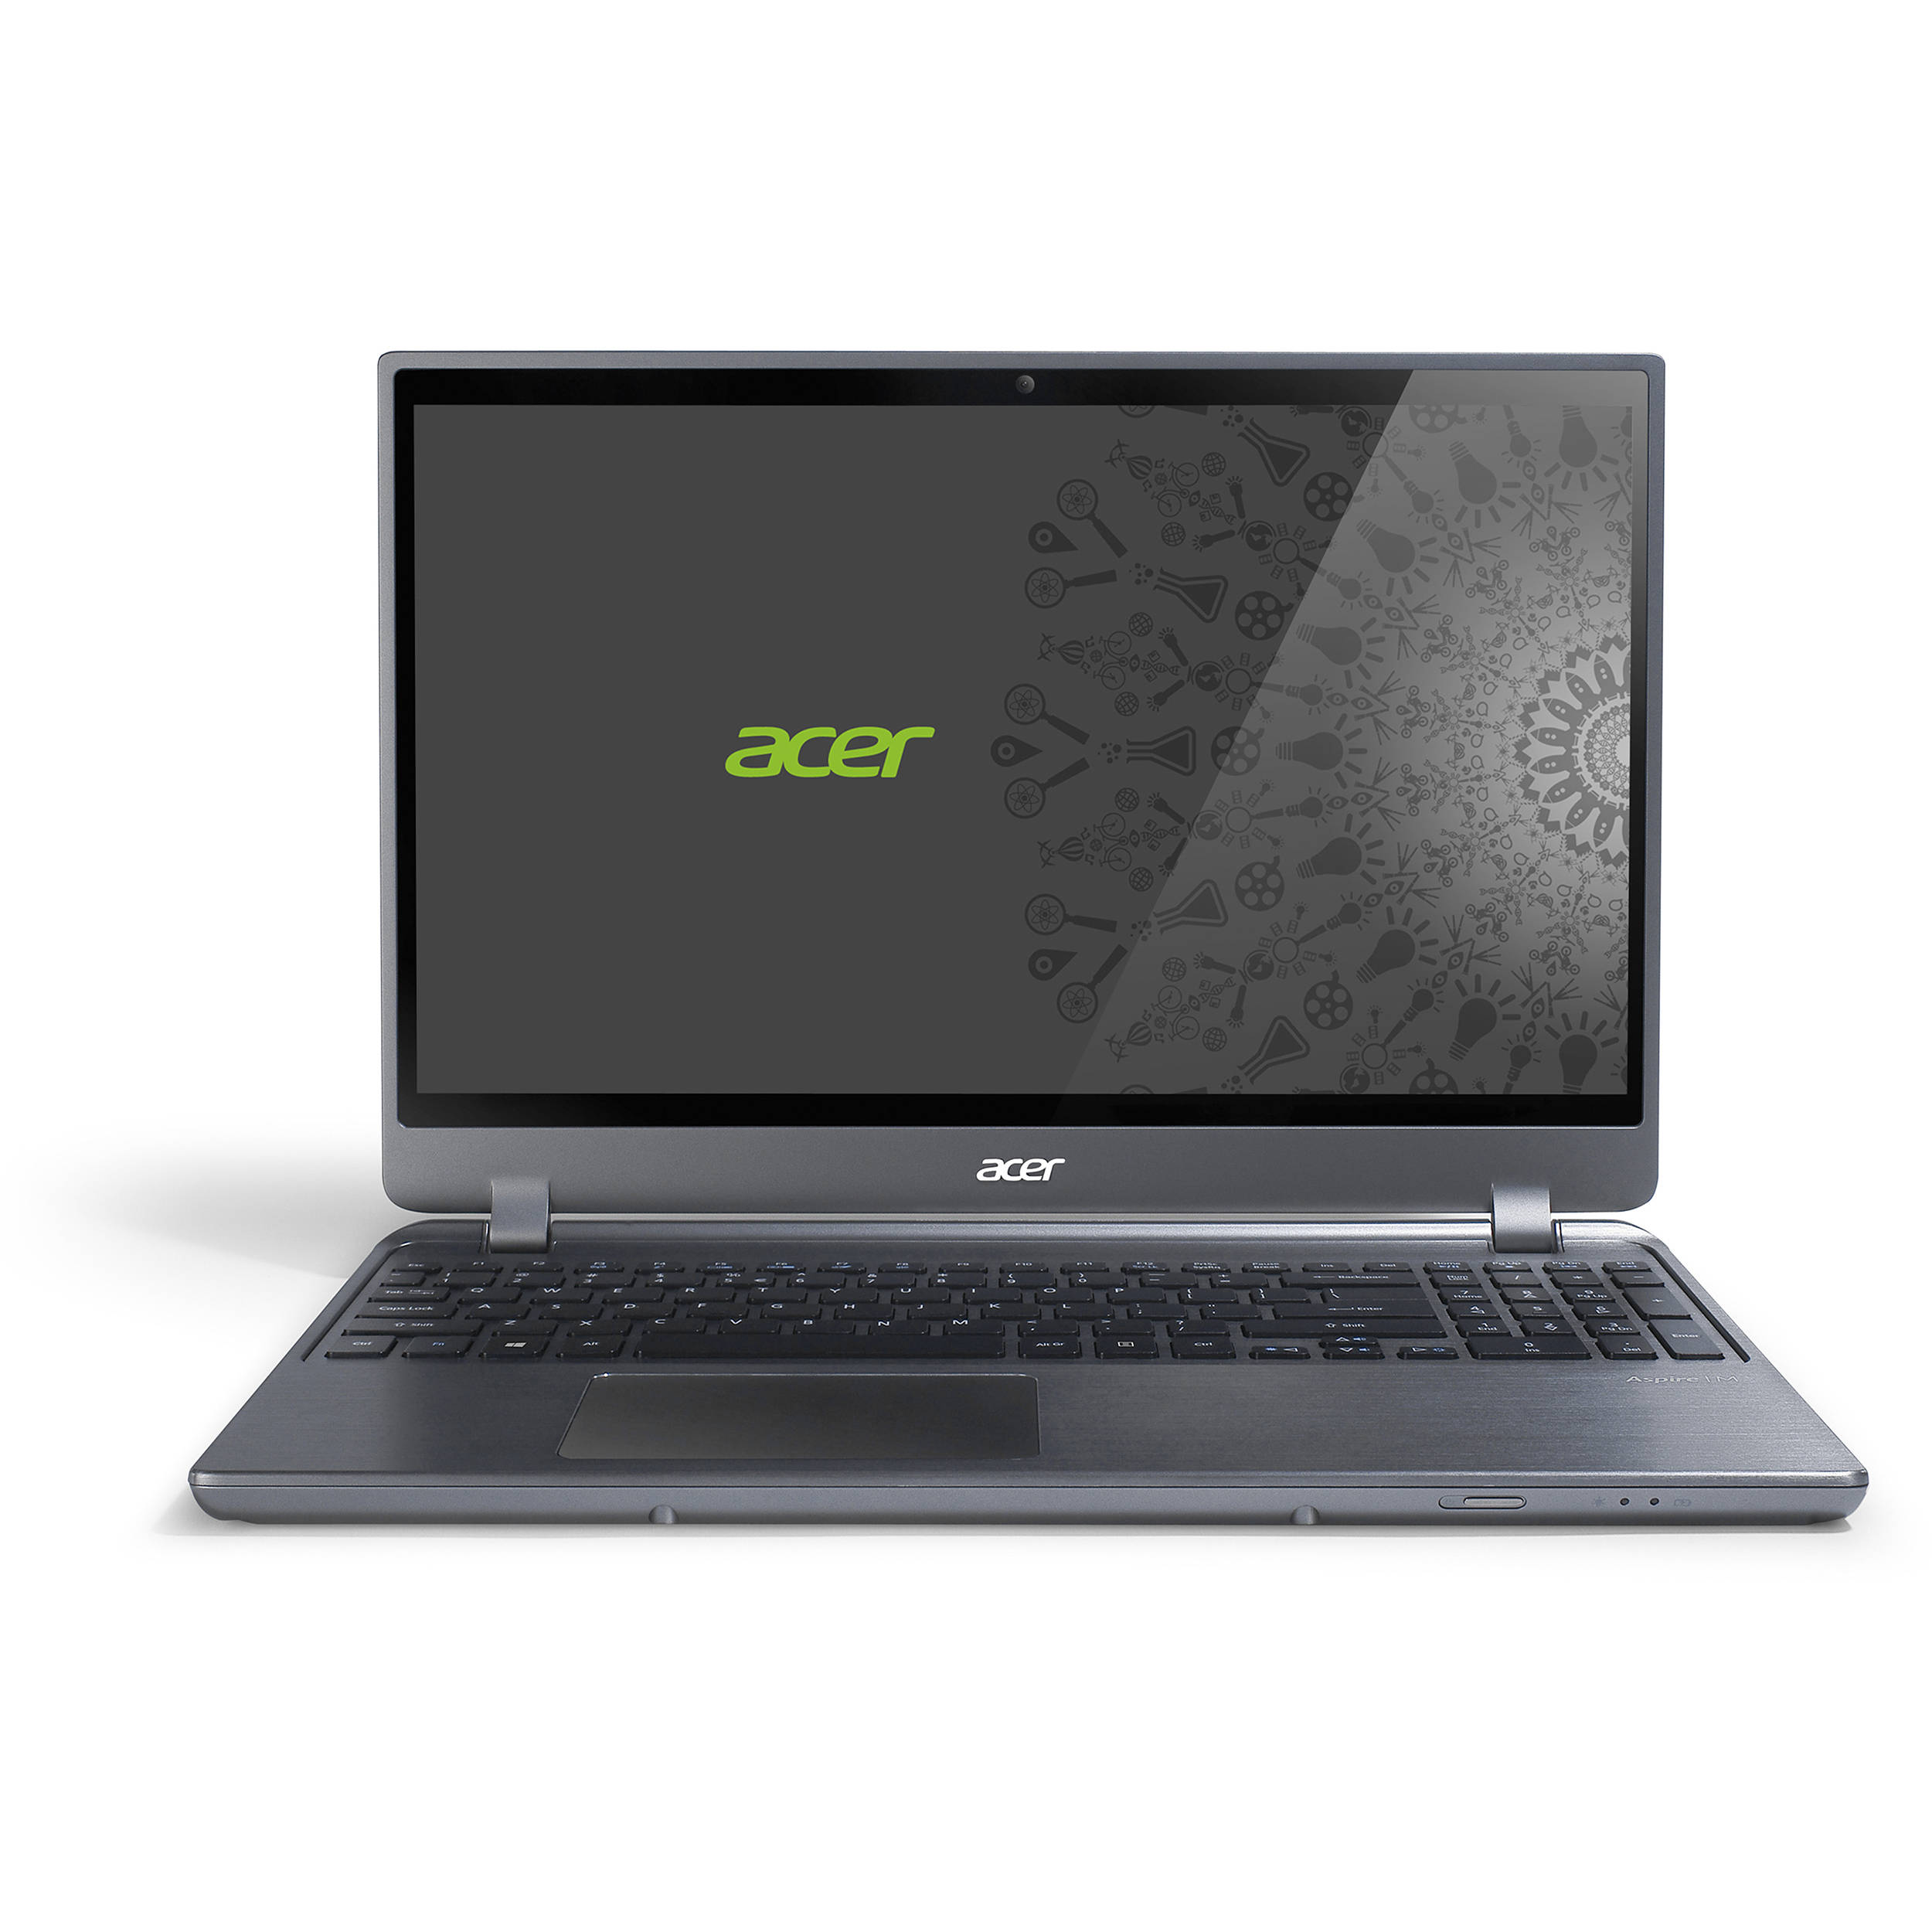 Acer Aspire M5-581T Intel Graphics Driver for Mac